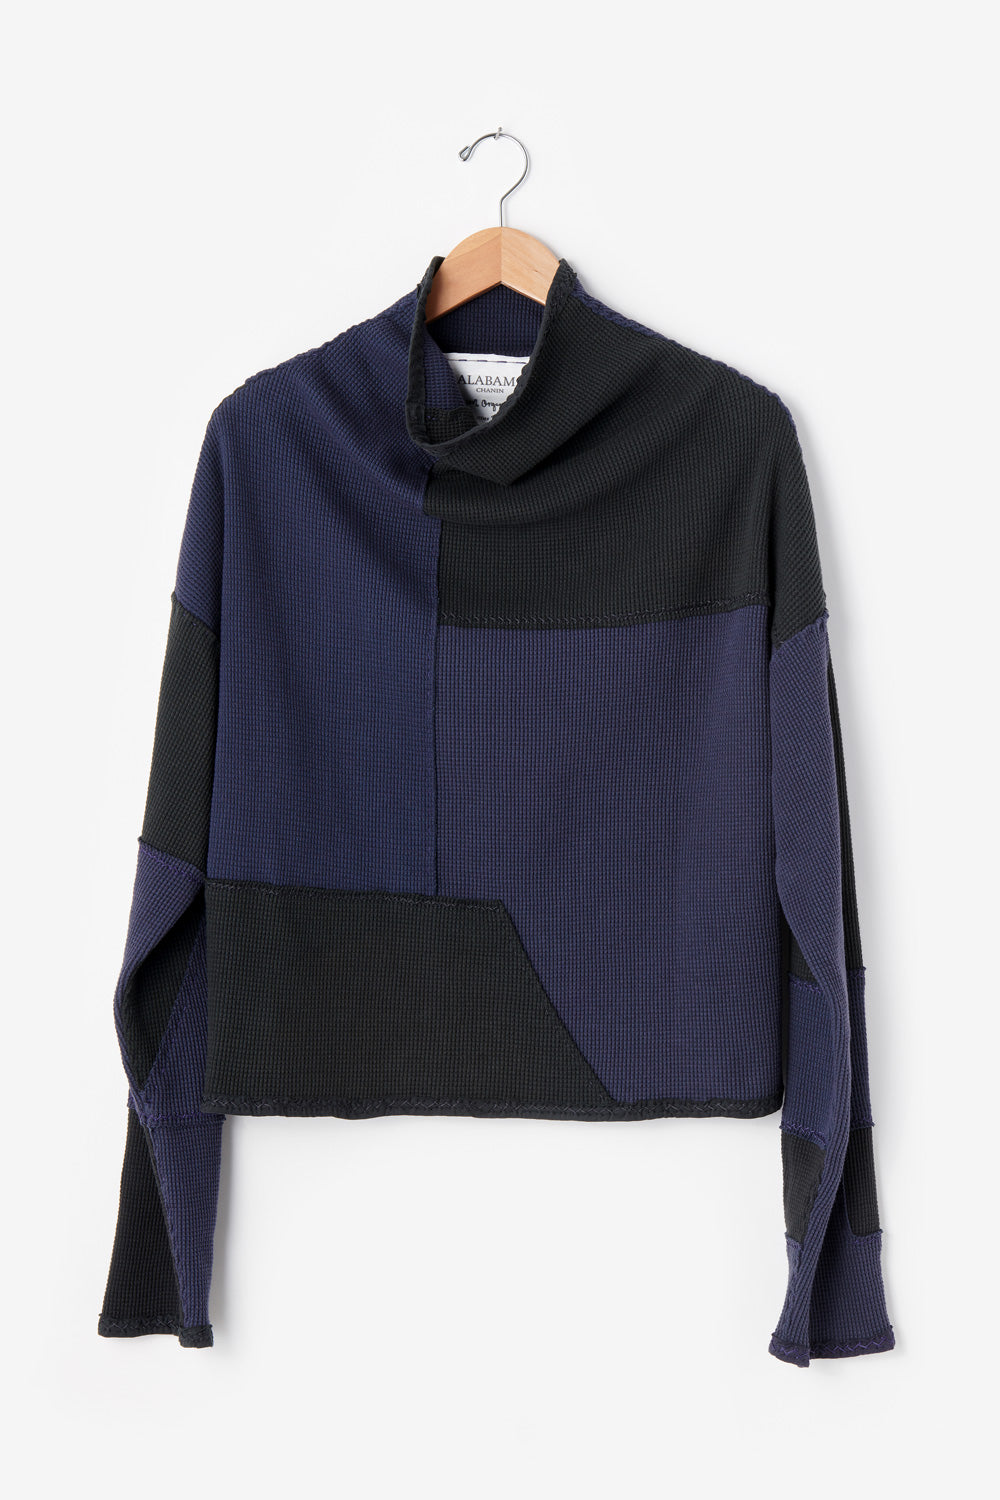 Alabama Chanin Artisan Designed Zero Waste Waffle Sweatshirt in Back and Navy 100% Organic Cotton Waffle Knit Sewn by Artisans One-of-a-Kind Designs 30493